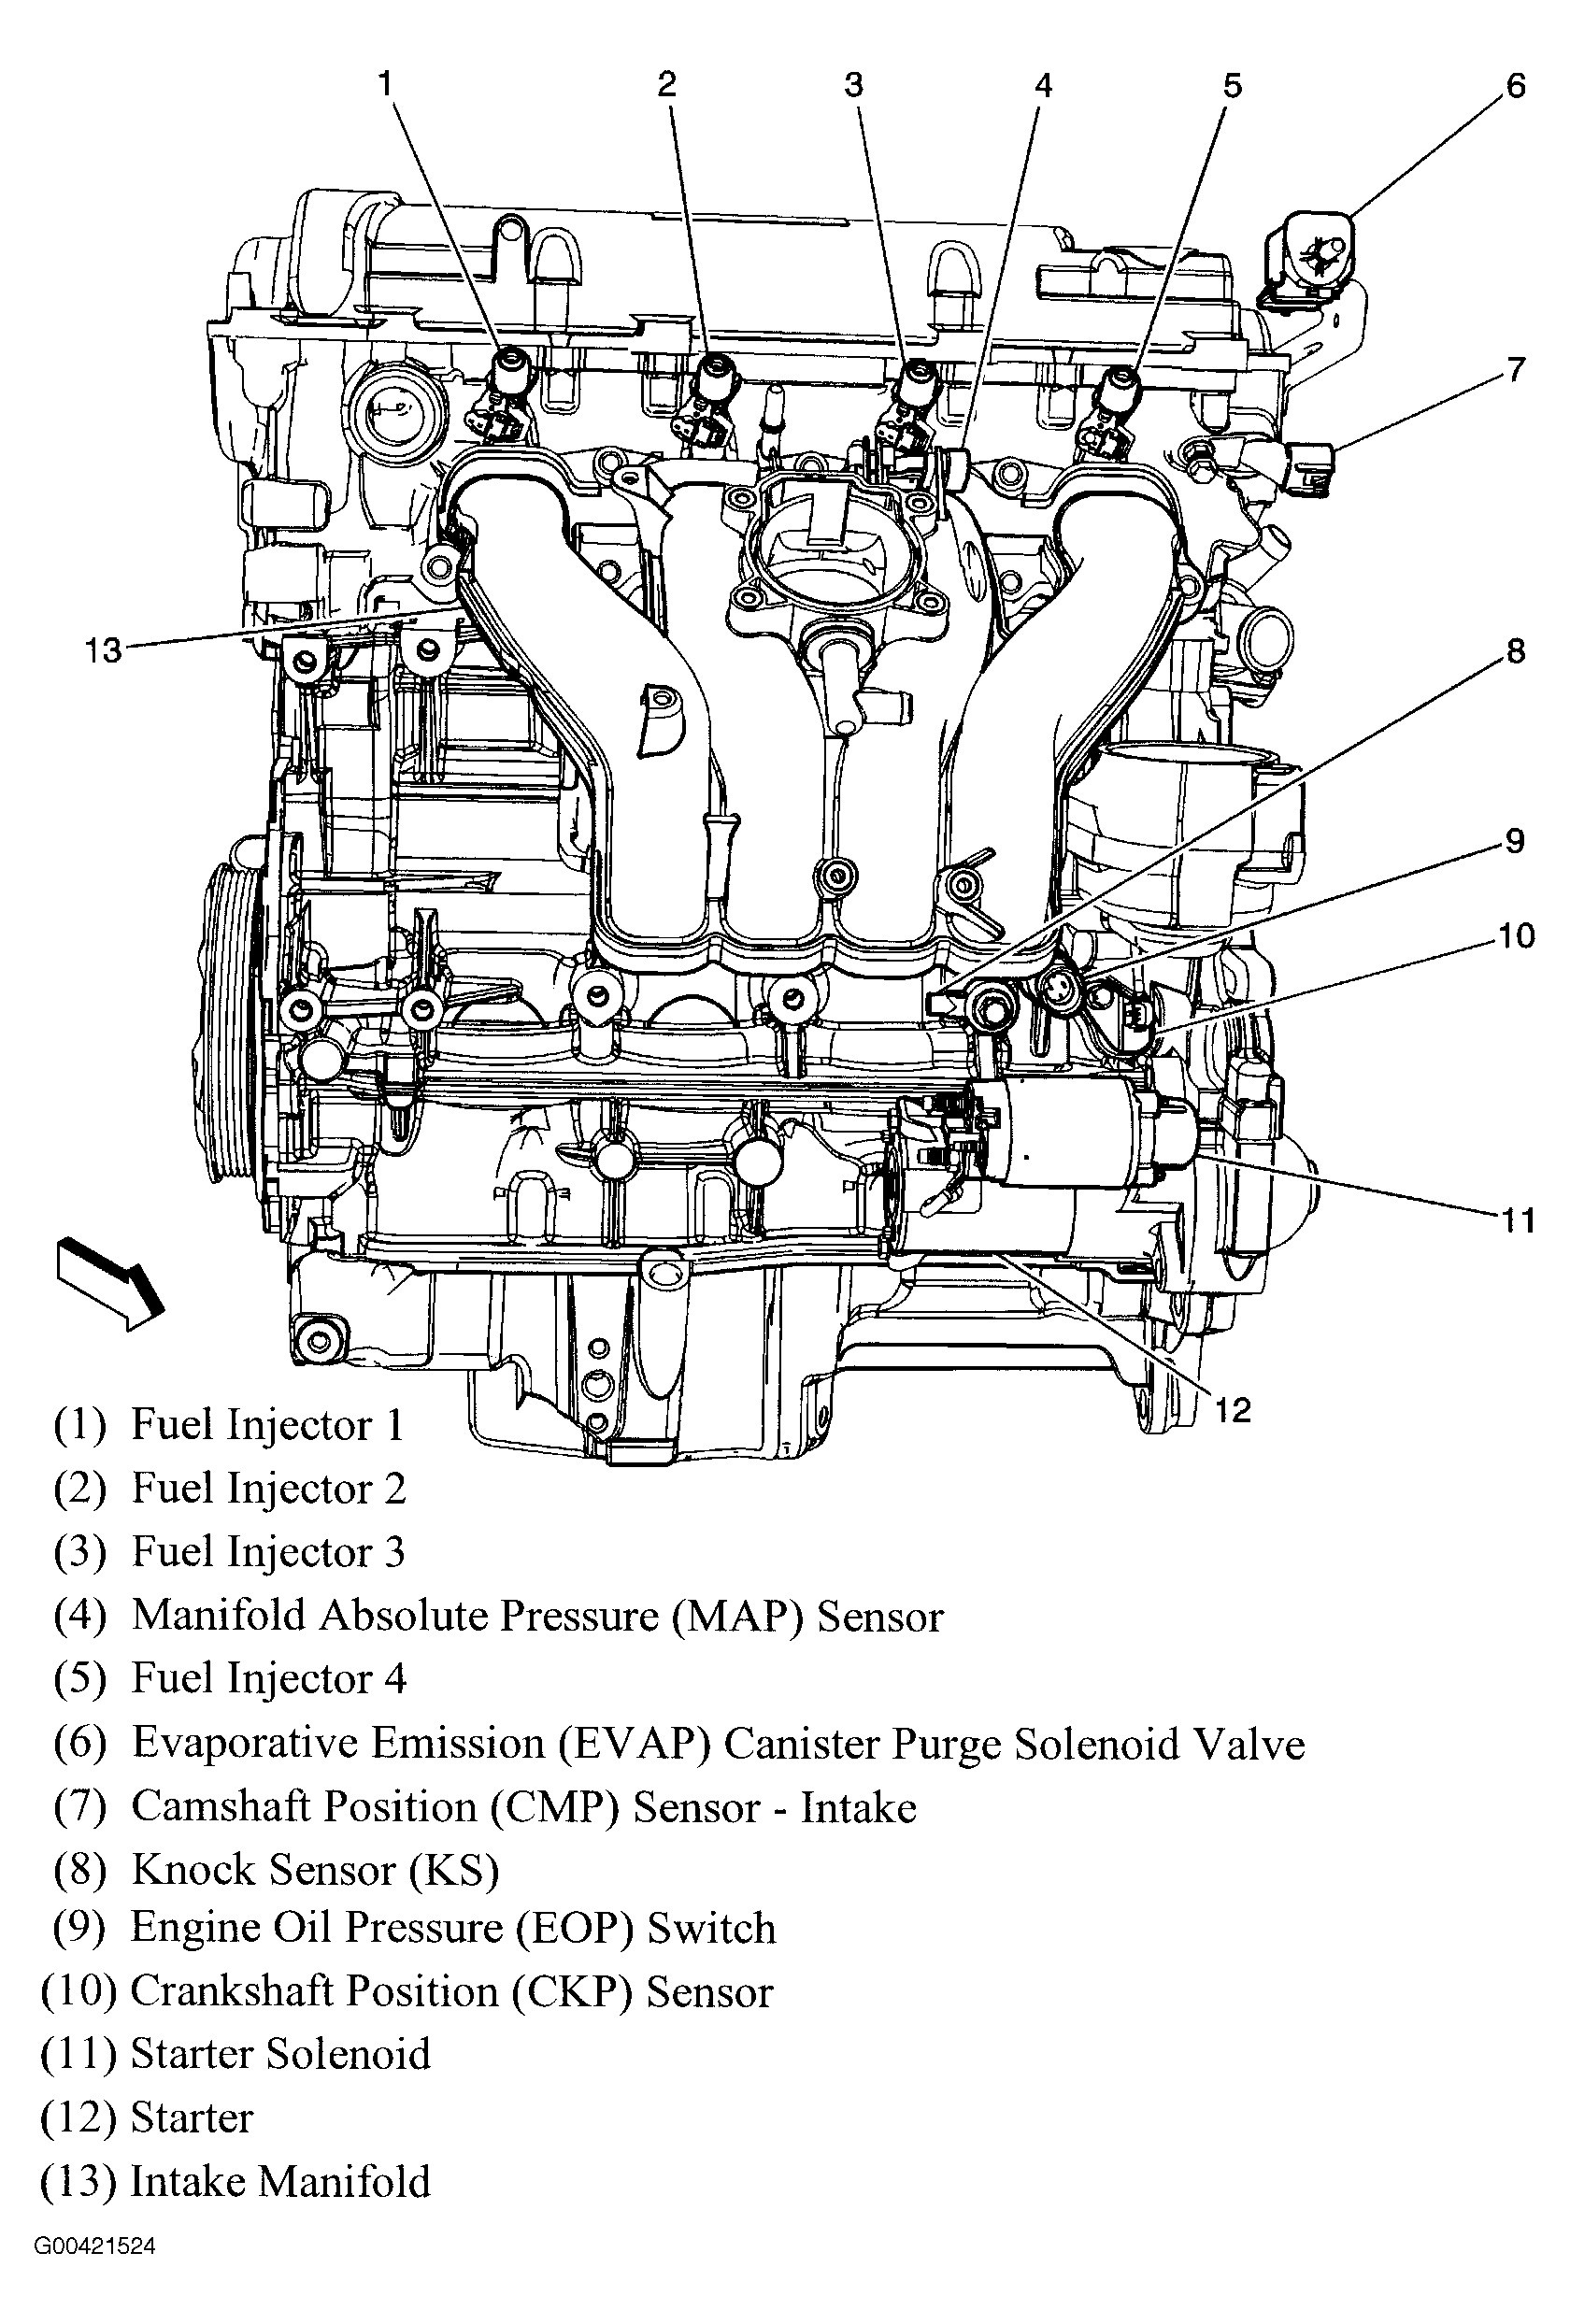 cavalier 2 2l engine diagram on chevy cavalier z24 2 4 engine 2000 Cavalier Front Suspension Diagram